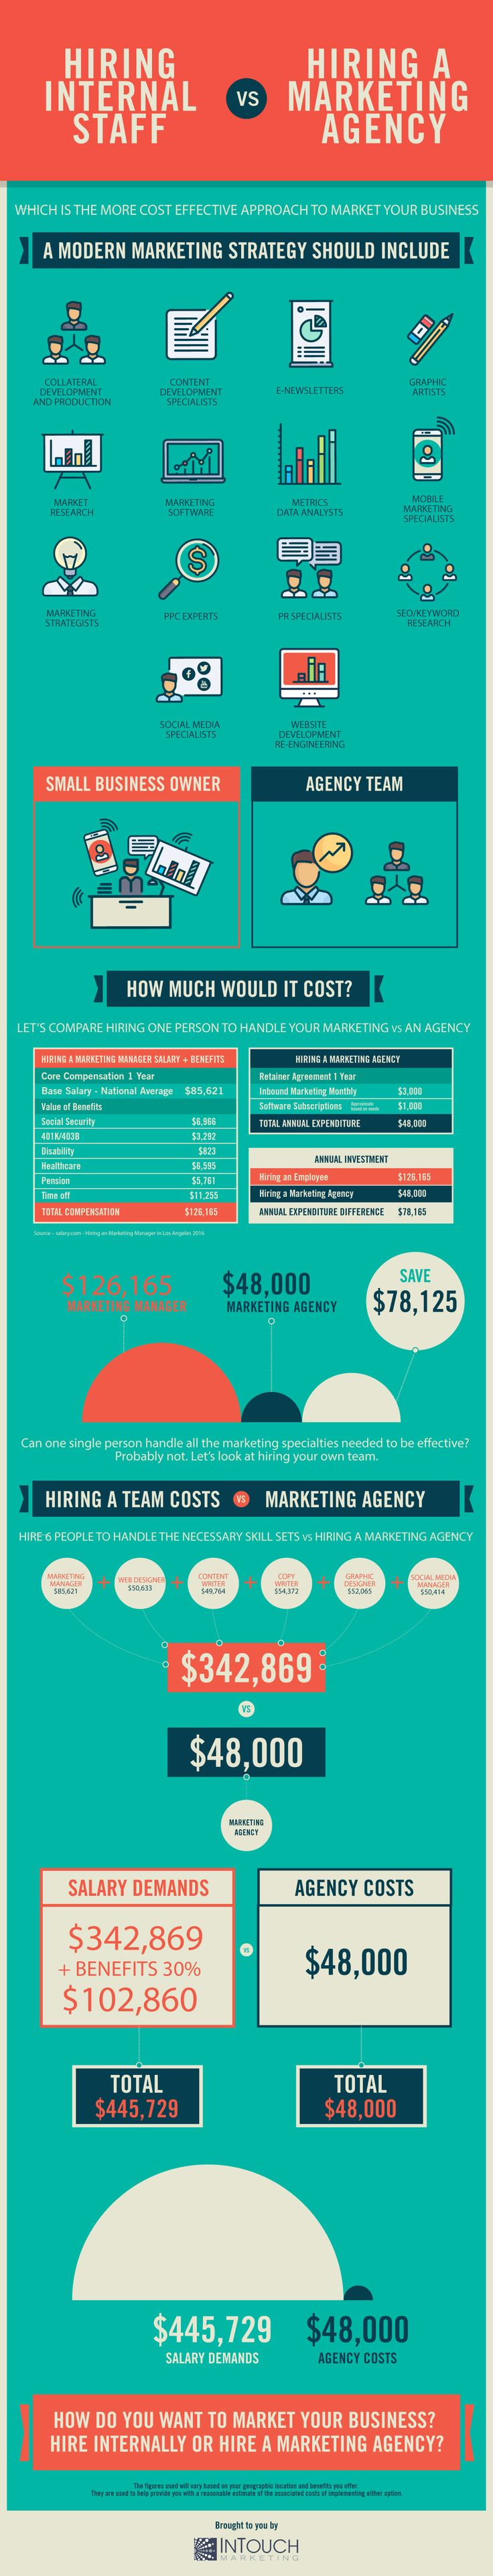 "Many business people believe that in order to grow their business they need to hire internal marketing staff. In reality, hiring a marketing firm instead can be much more cost-effective and help you reach your financial business goals faster. Explore ""Hiring A Marketing Agency Vs. Hiring Internal Staff"" in this infographic by InTouch Marketing."